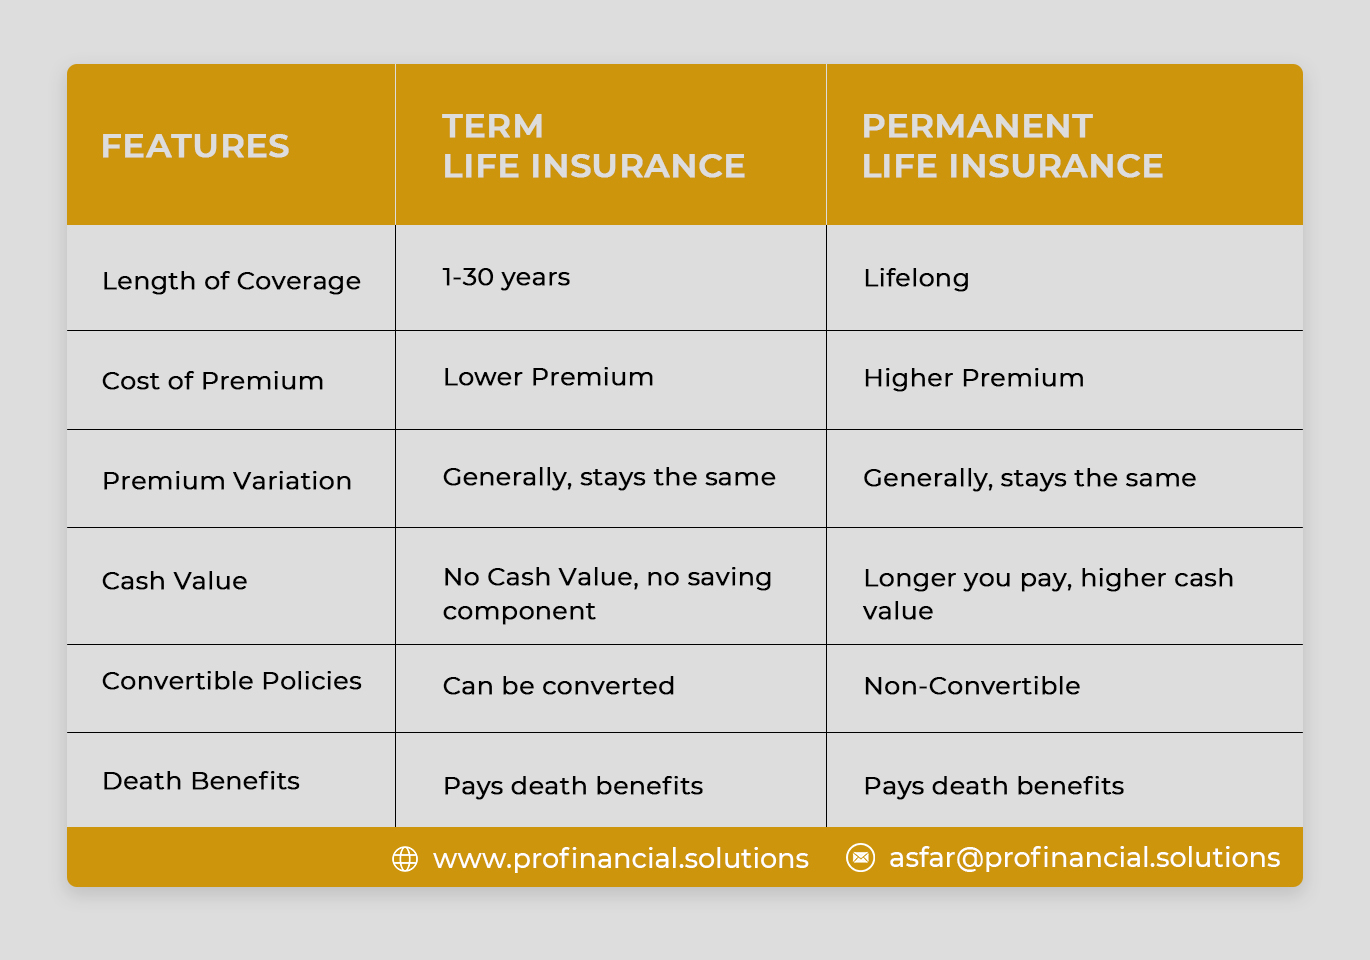 Key Features of Term Insurance & Permanent Insurance